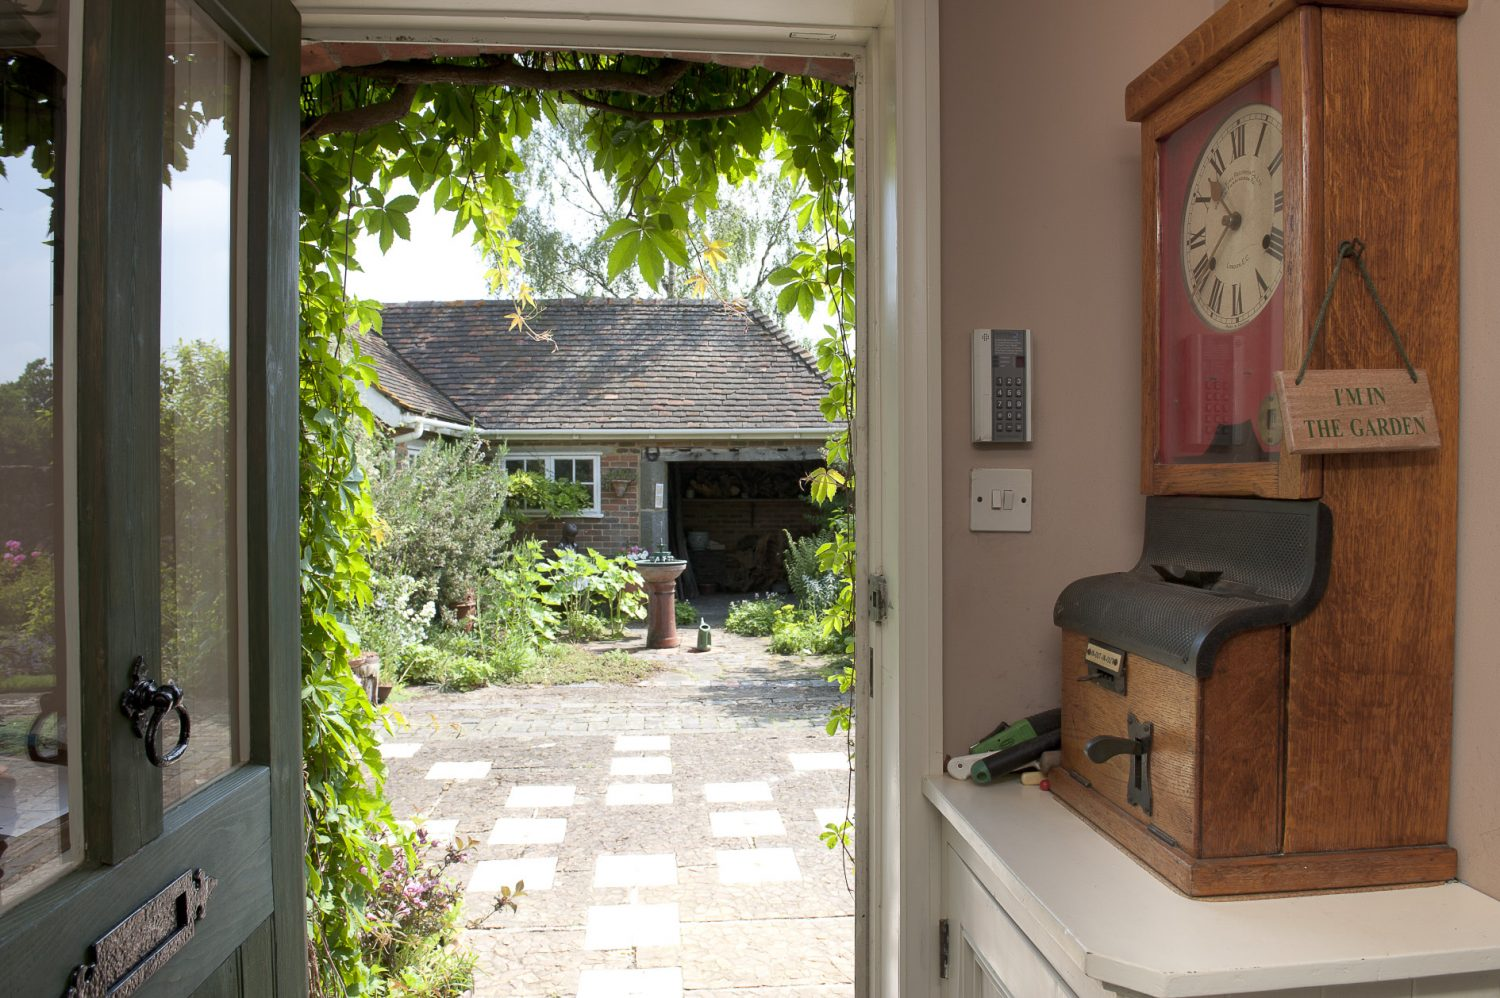 The front door leads straight out into the couple's beautiful garden